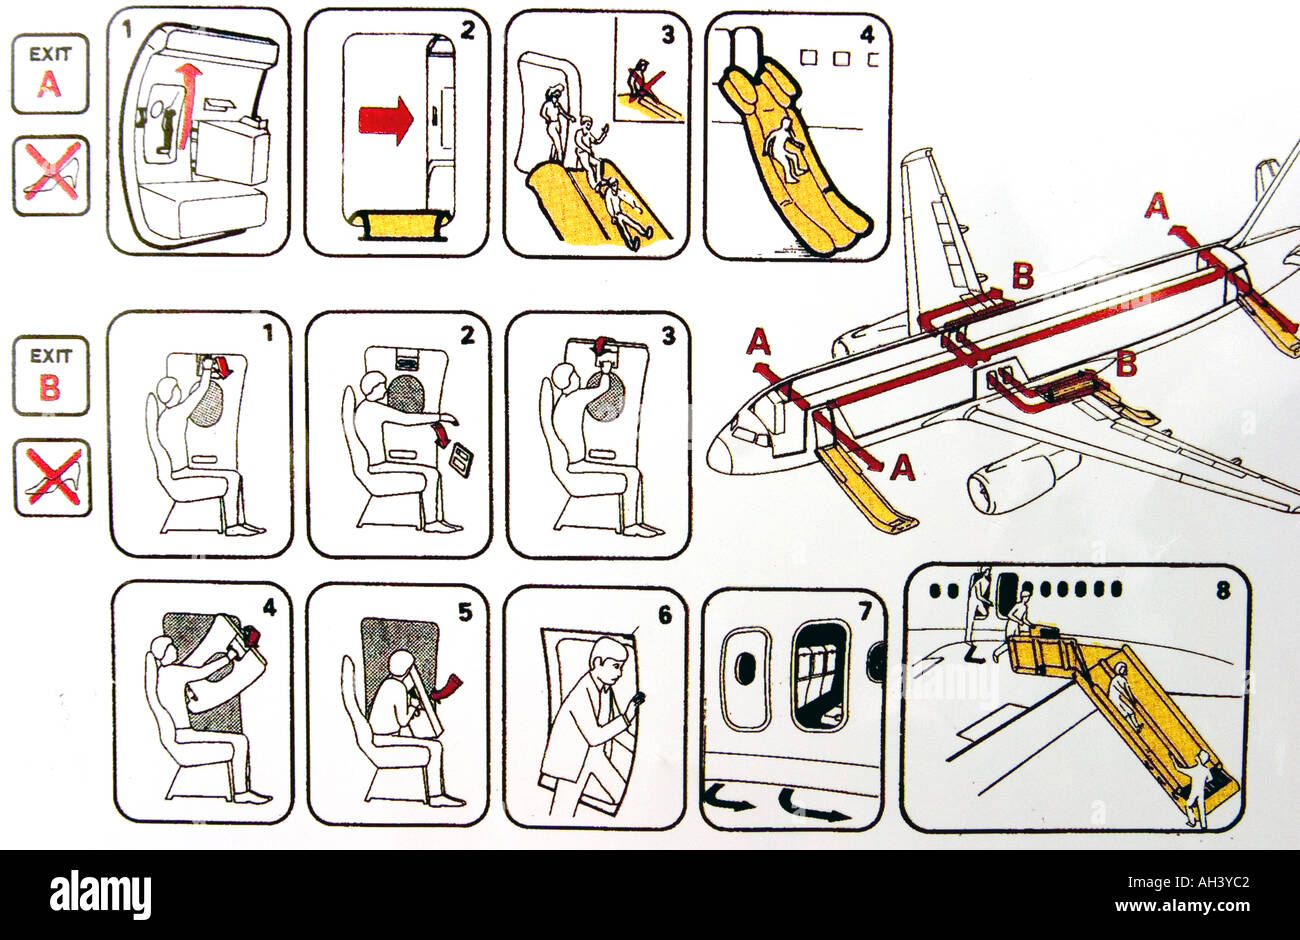 Passenger safety instructions of a plane stock photo: 4687891 alamy.